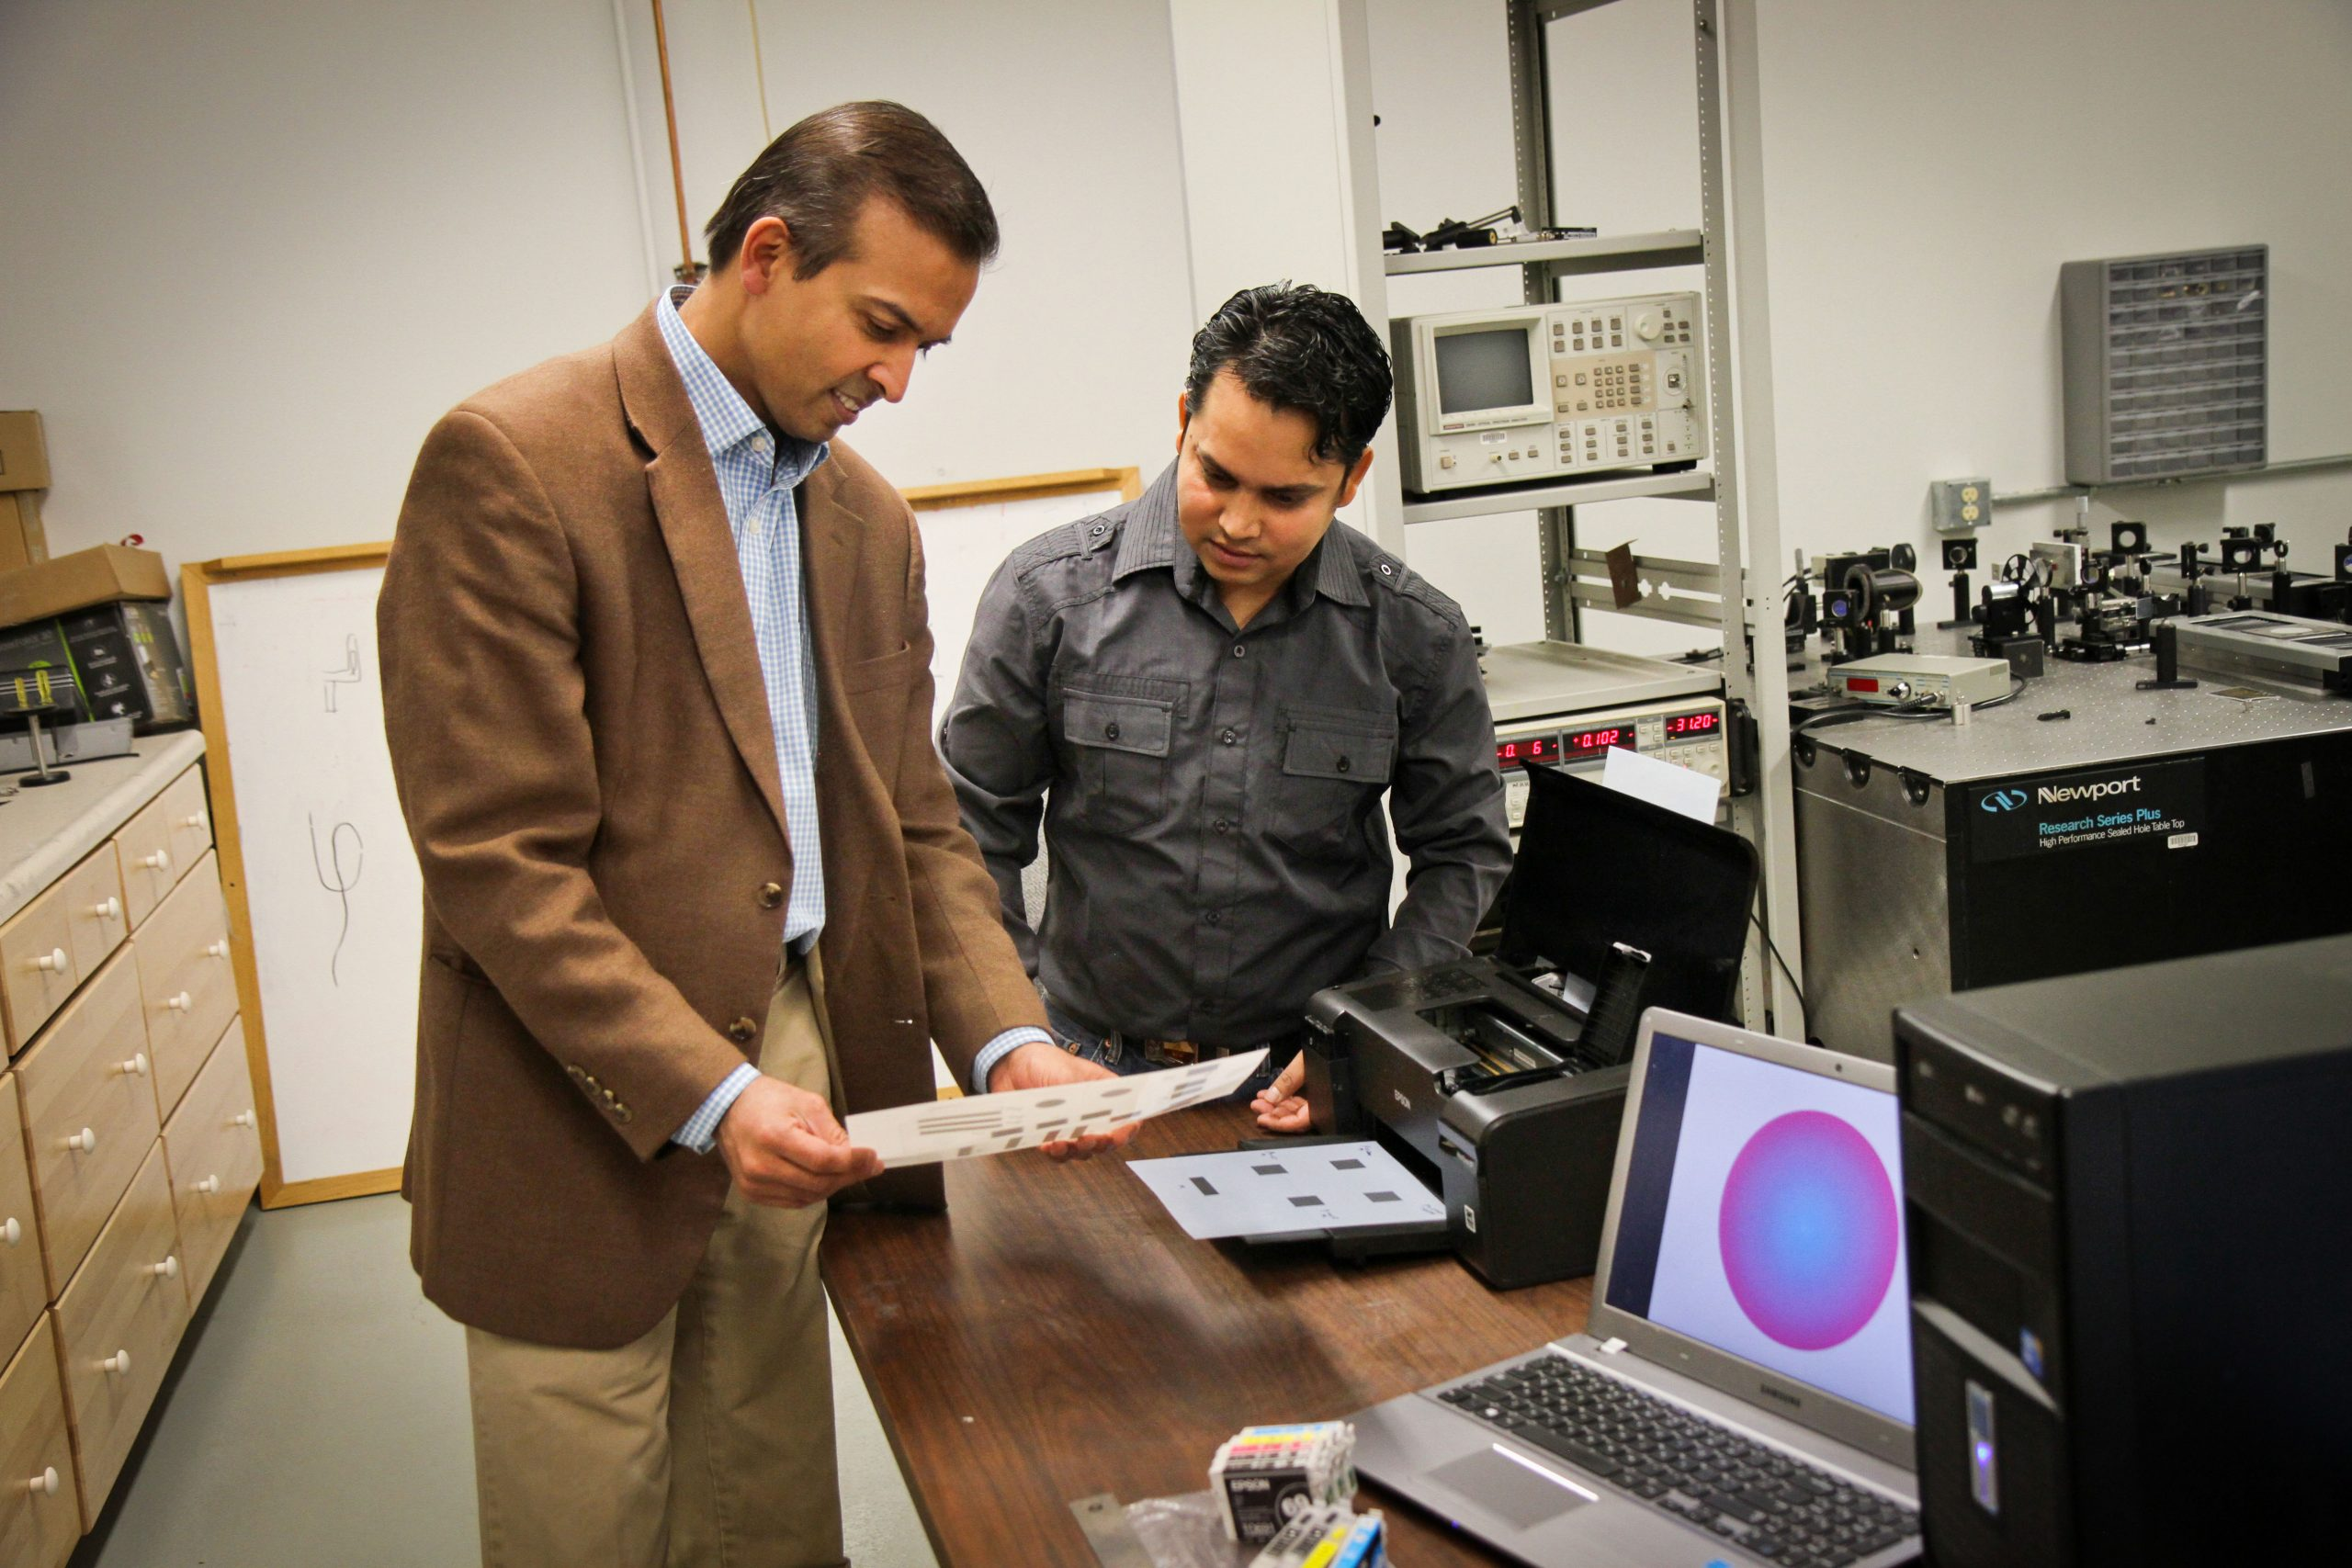 University of Utah electrical engineers Ajay Nahata and Barun Gupta used a $60 inkjet printer with silver and carbon ink cartridges to create a new, widely applicable way to make microscopic structures that use light in metals to carry information. This new technique could be used to rapidly fabricate superfast components in electronic devices, make wireless technology faster or print magnetic materials.